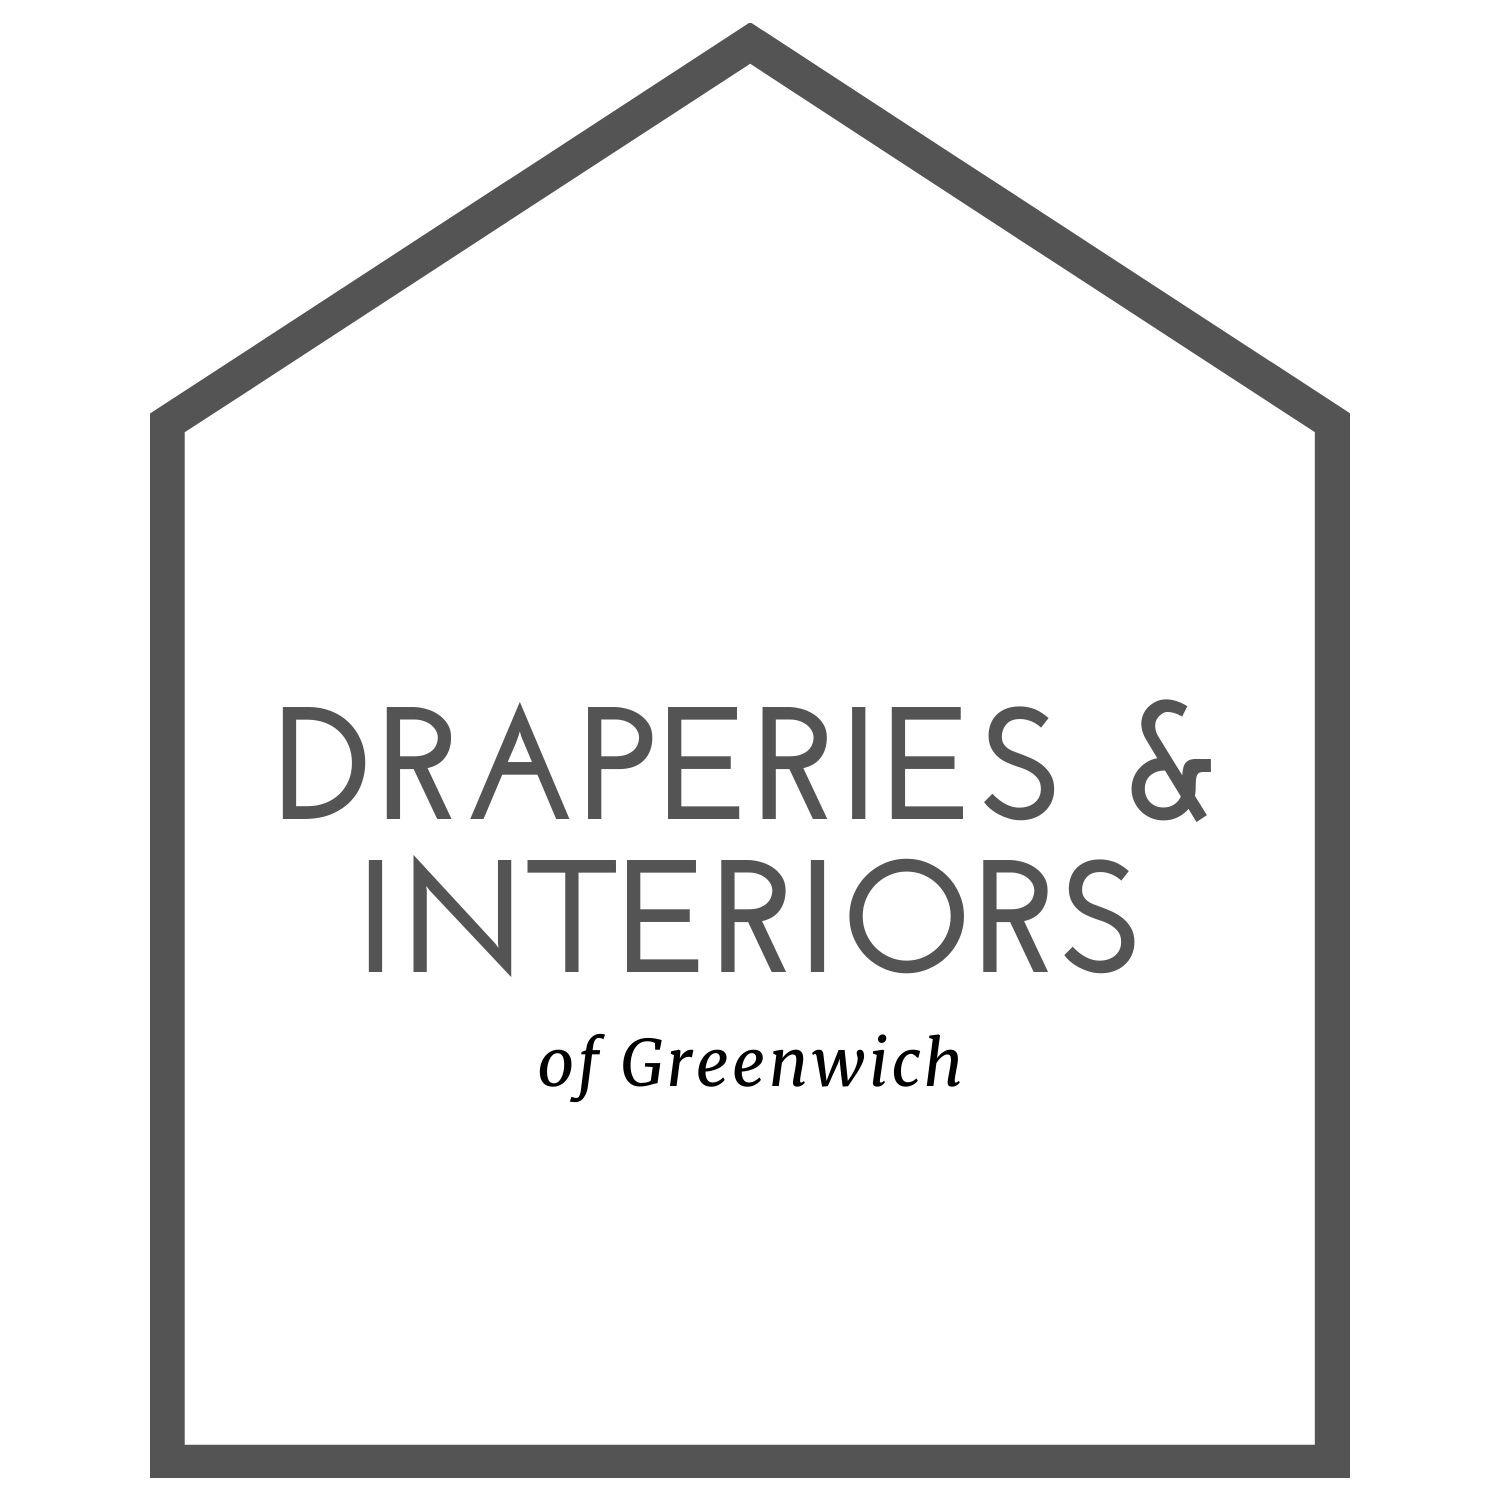 Draperies and Interiors of Greenwich